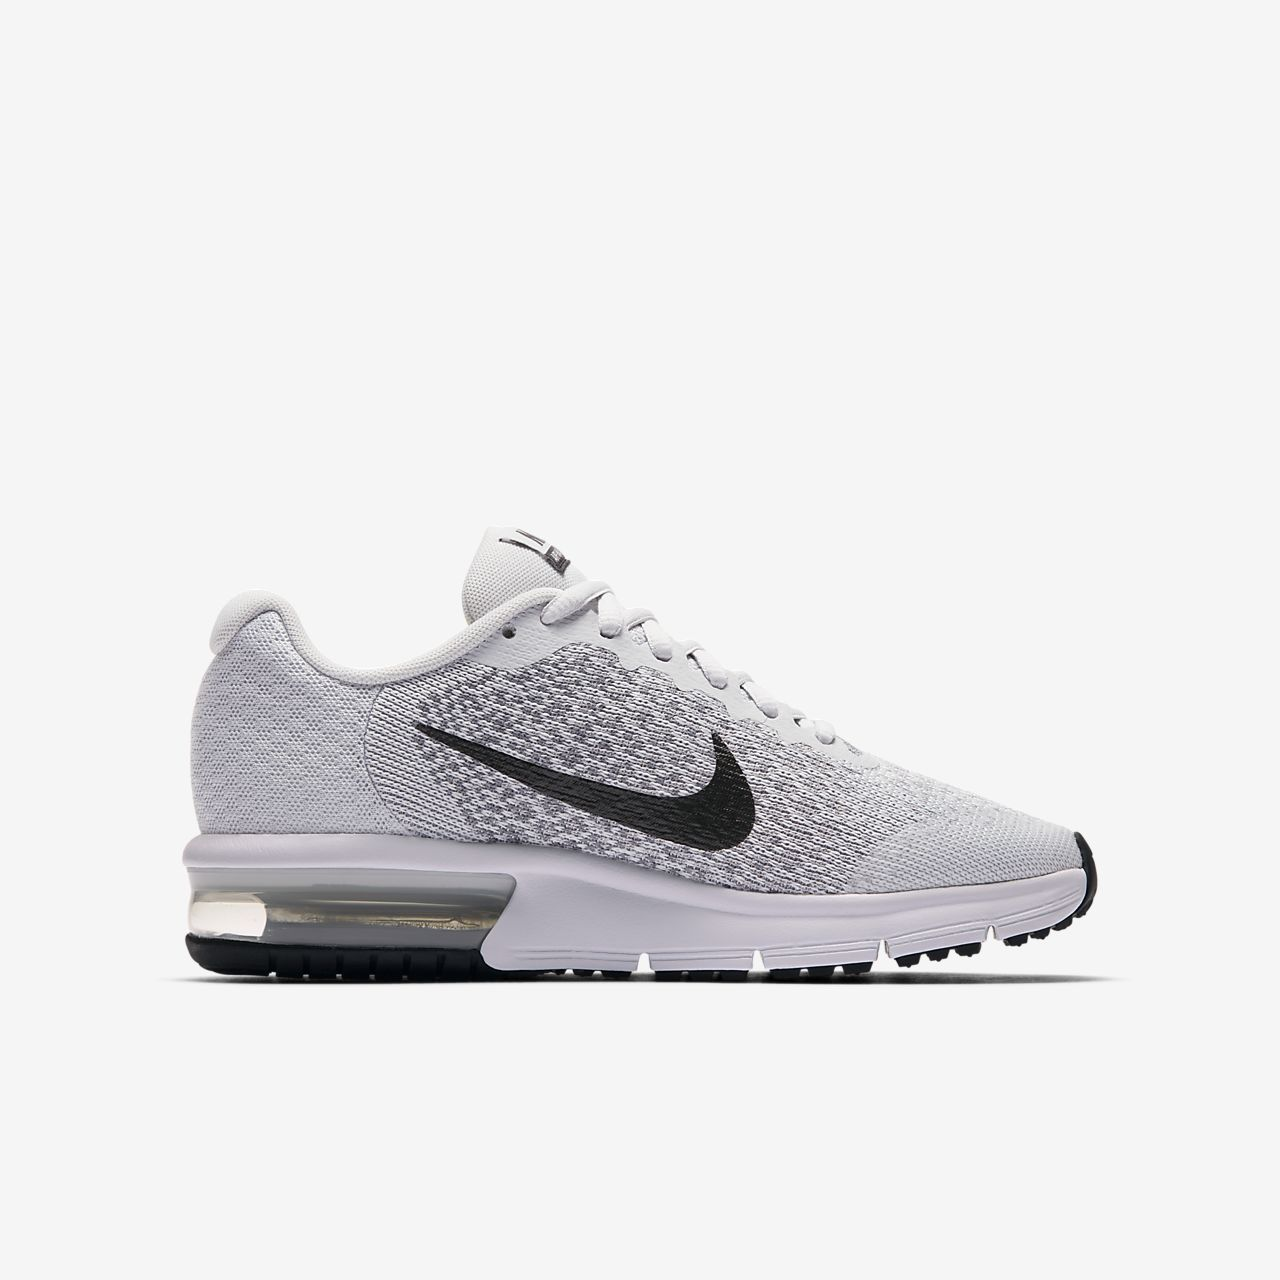 Achat Nike Air Max Sequent 2 Homme Chaussures White Black